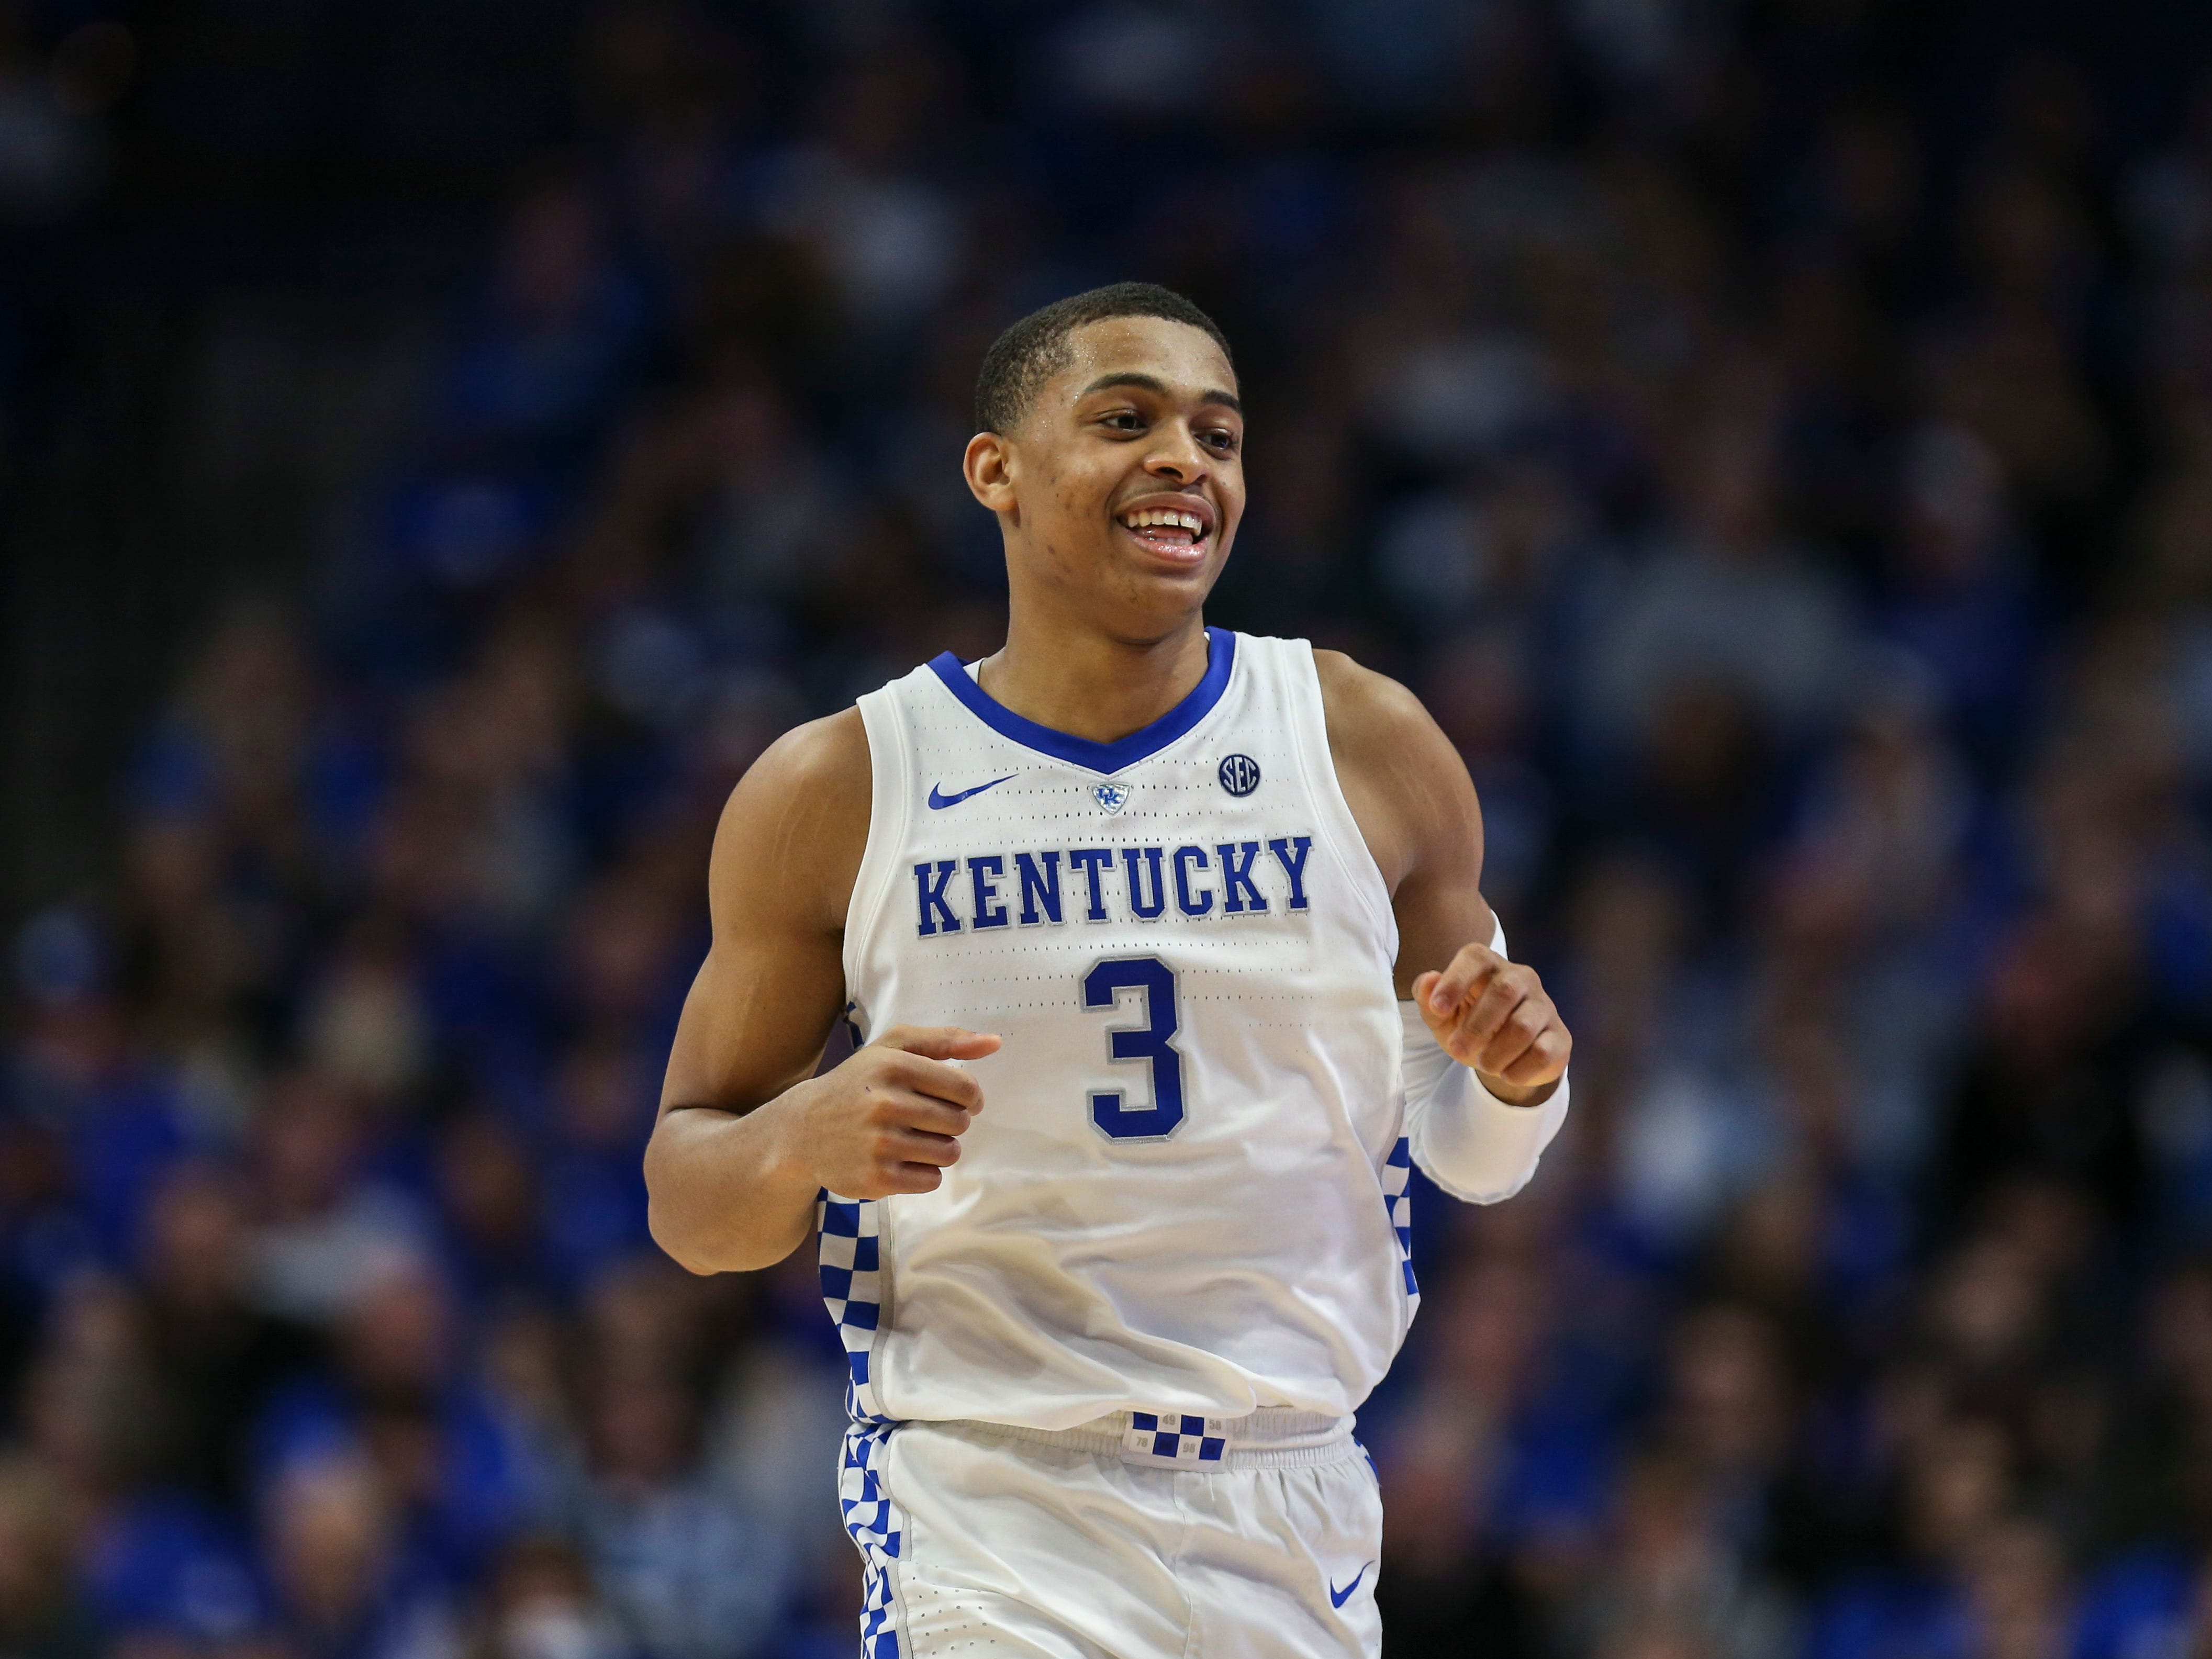 Kentucky's Keldon Johnson smiled as he hustled up the court during the game against South Carolina. He finished with nine points and six rebounds Feb. 5, 2019